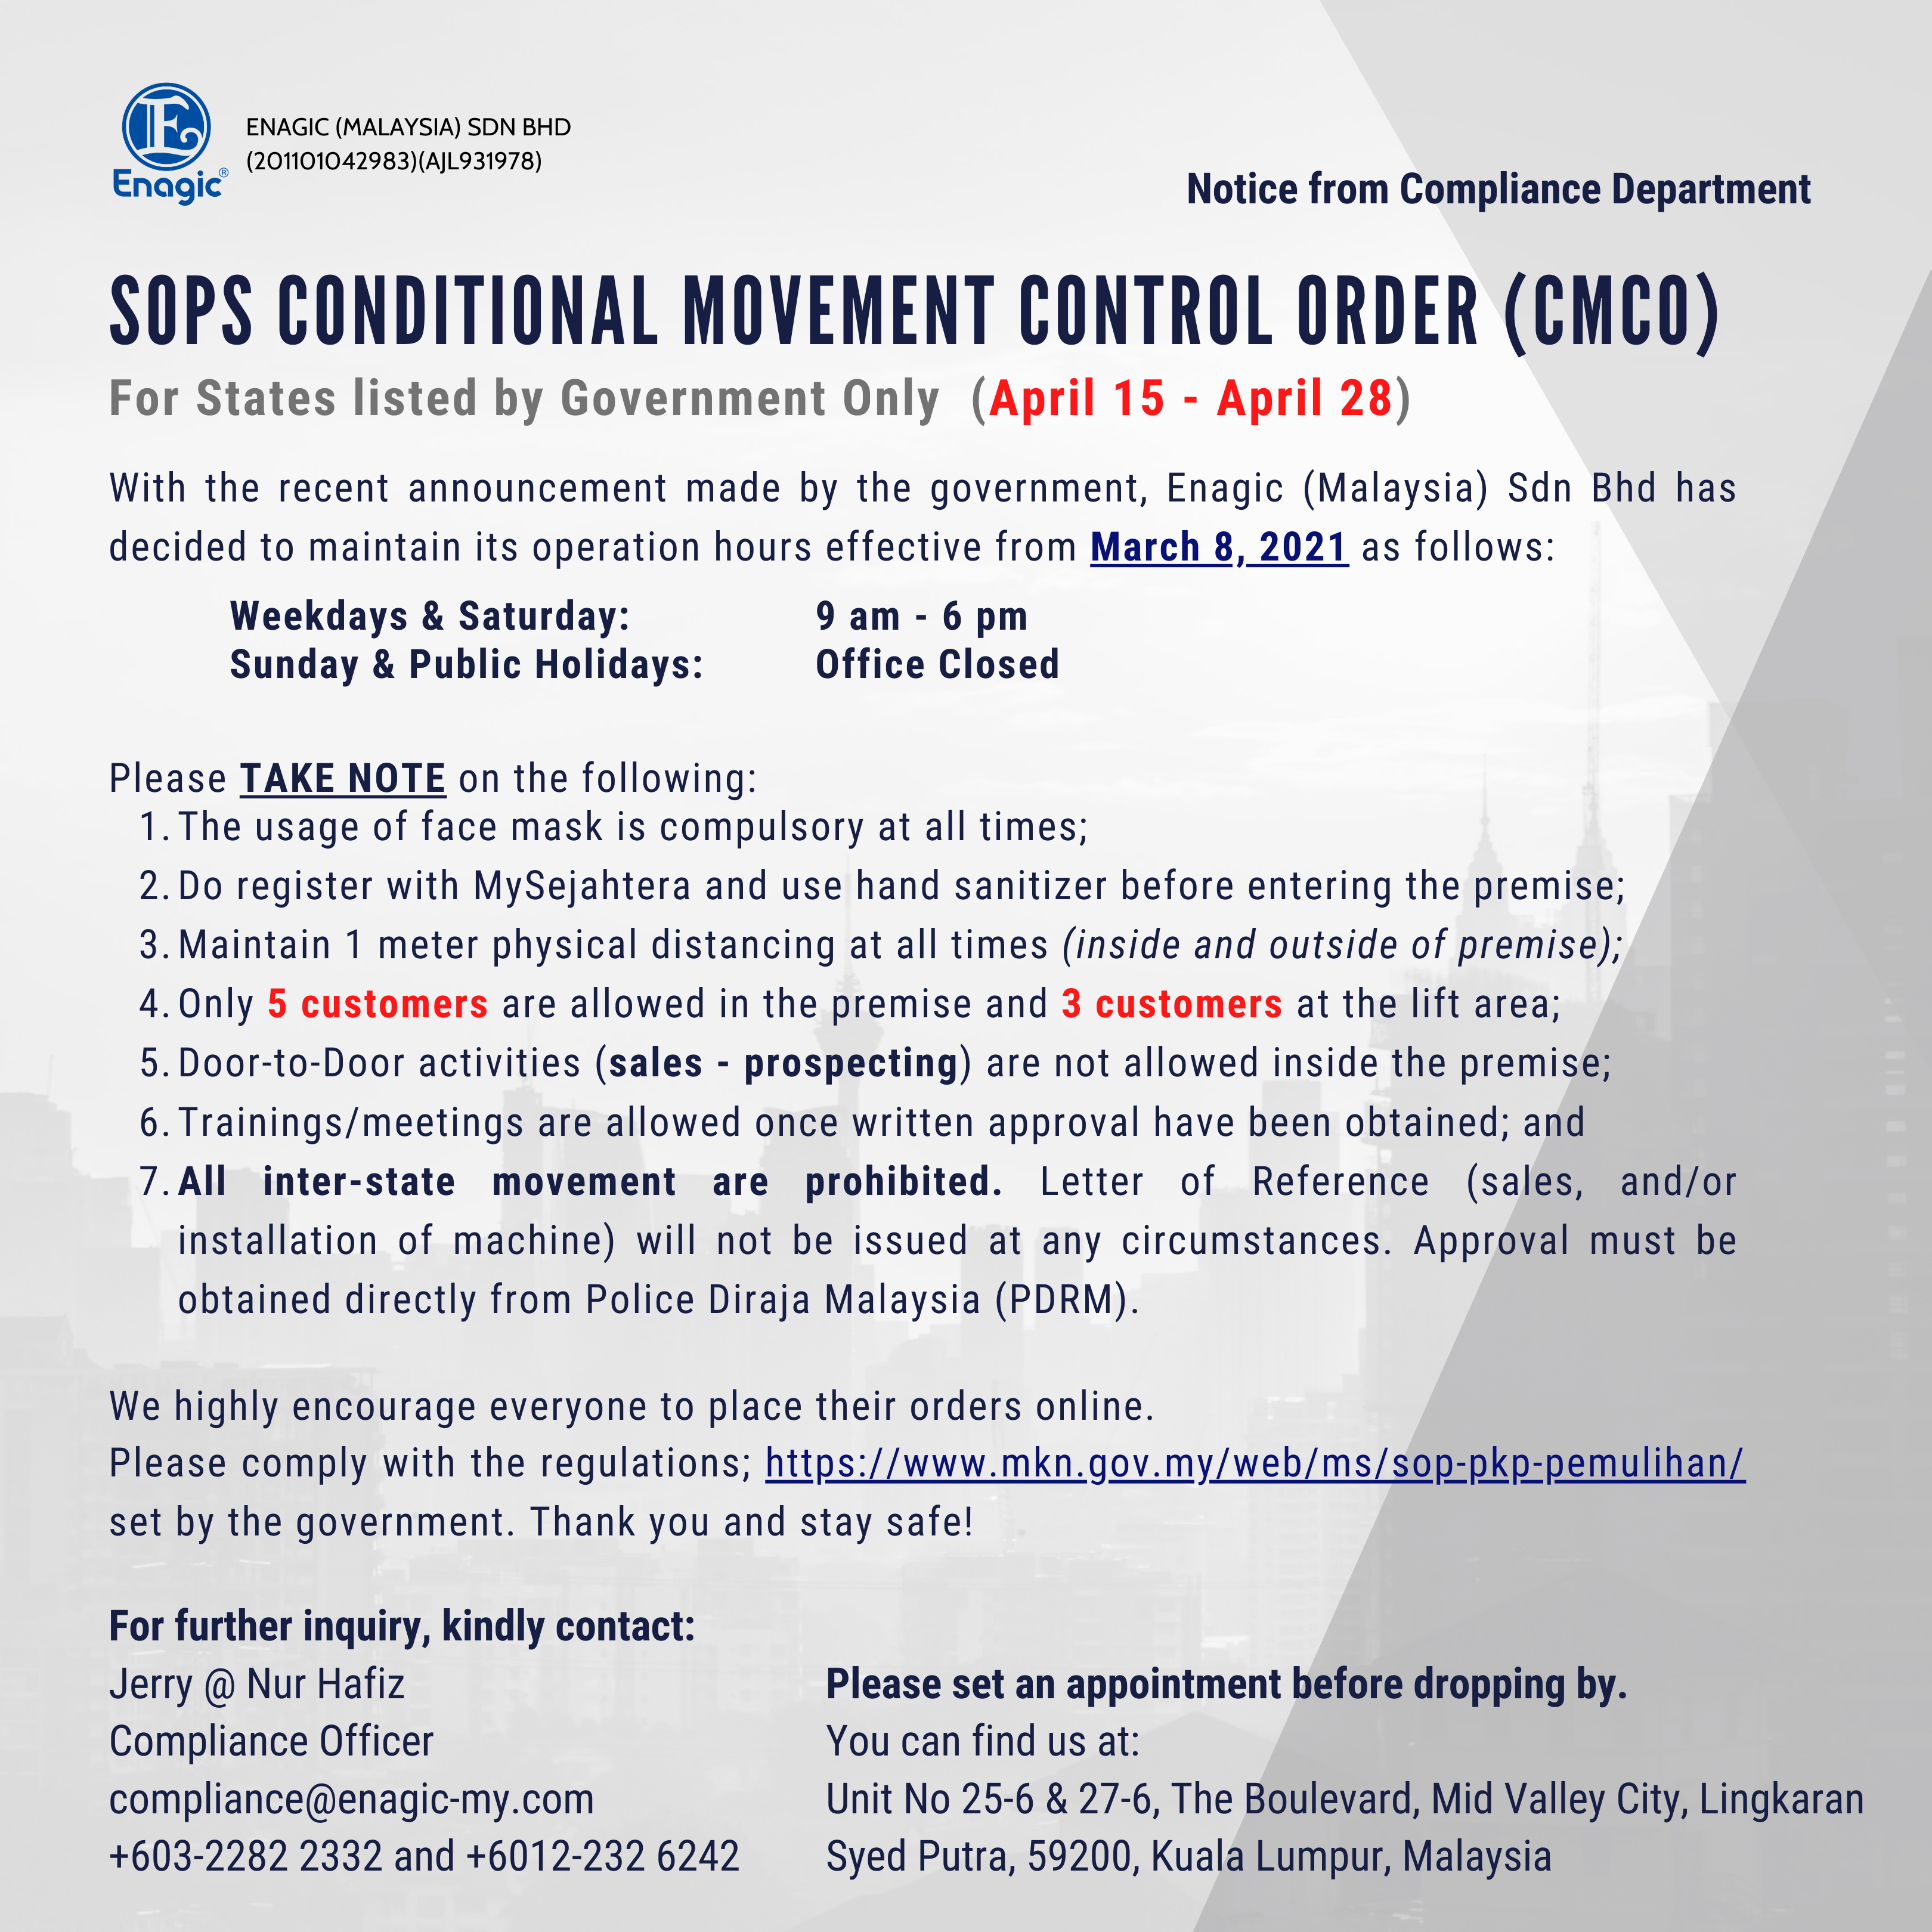 SOPs Conditional Movement Control Order (CMCO)